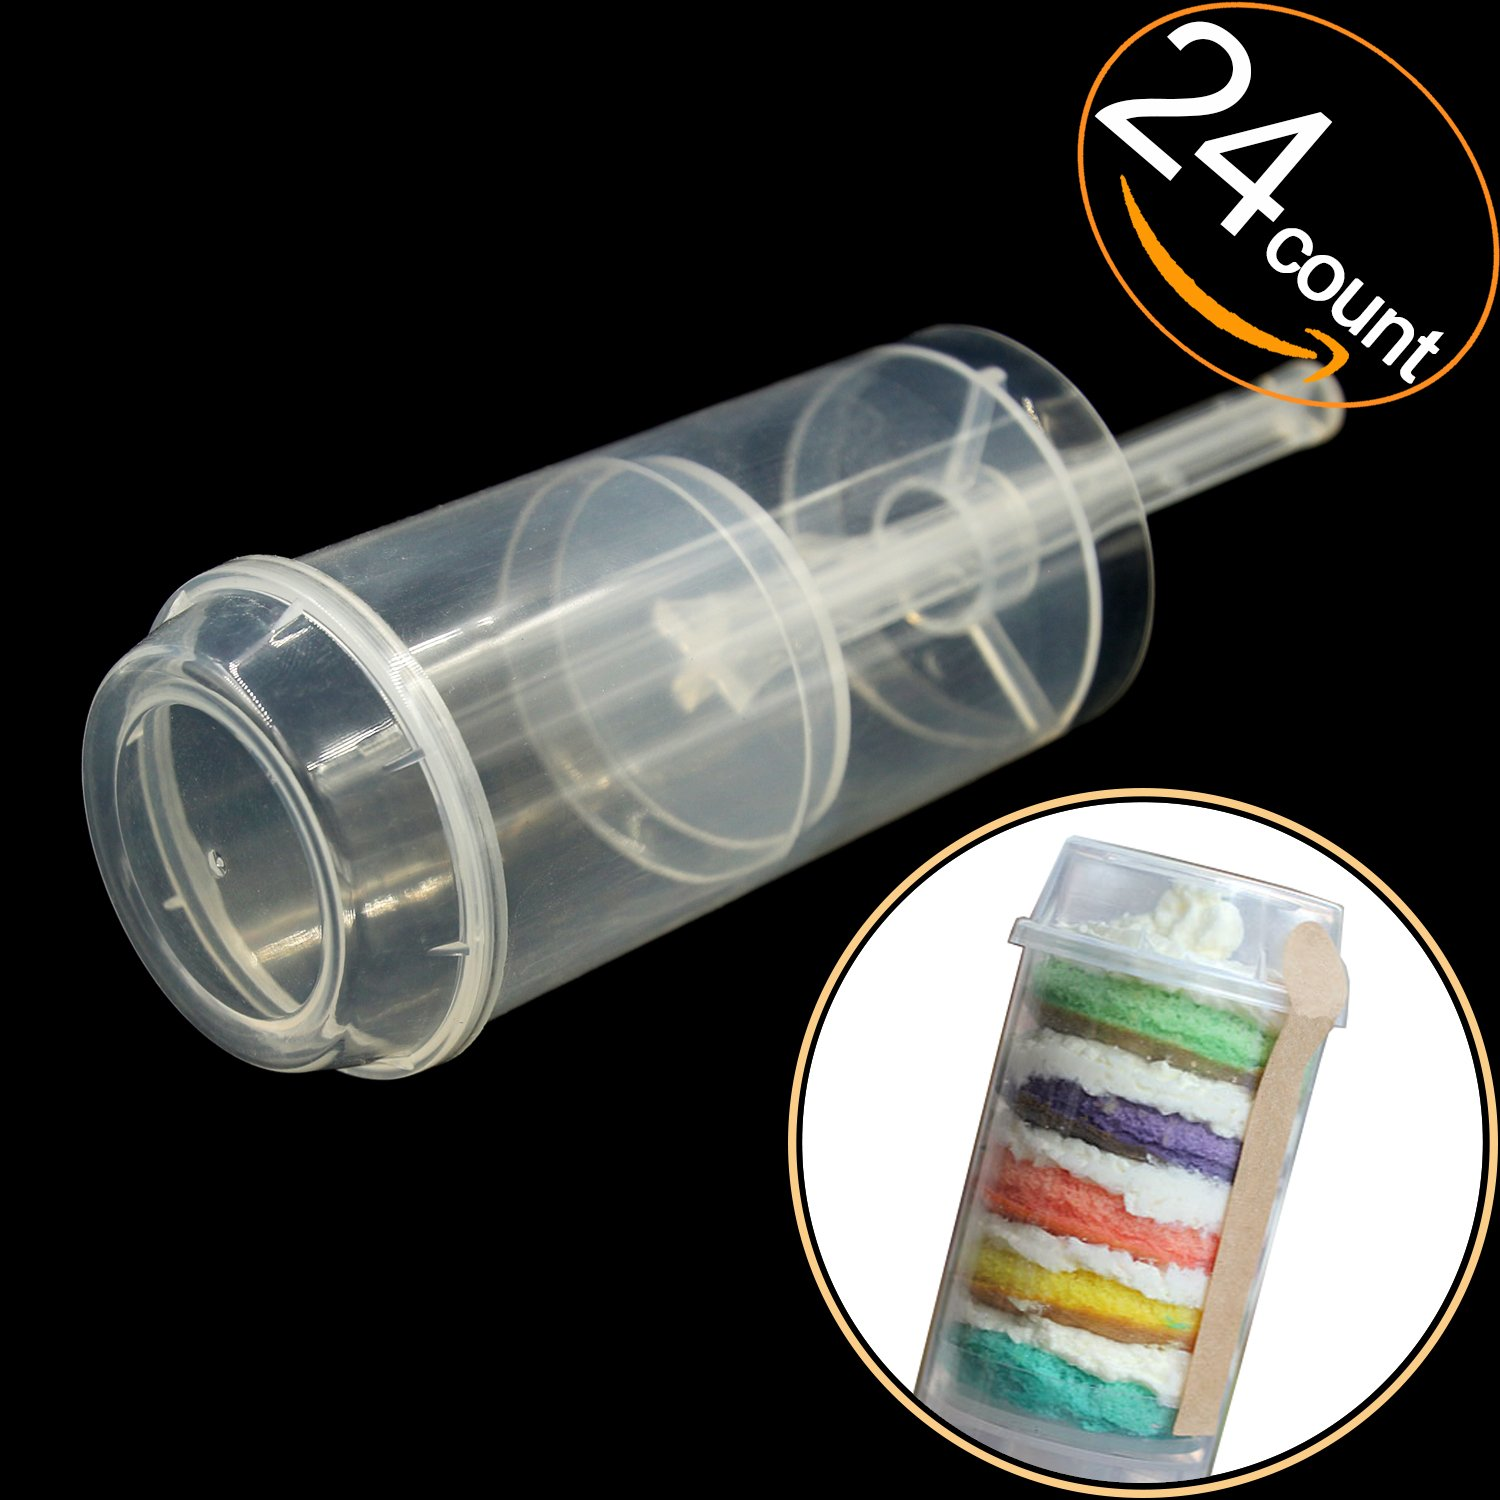 EKIND Clear Push-Up Cake Pop Shooter (Push Pops) Plastic Containers with Lids, Base & Sticks, Pack of 24